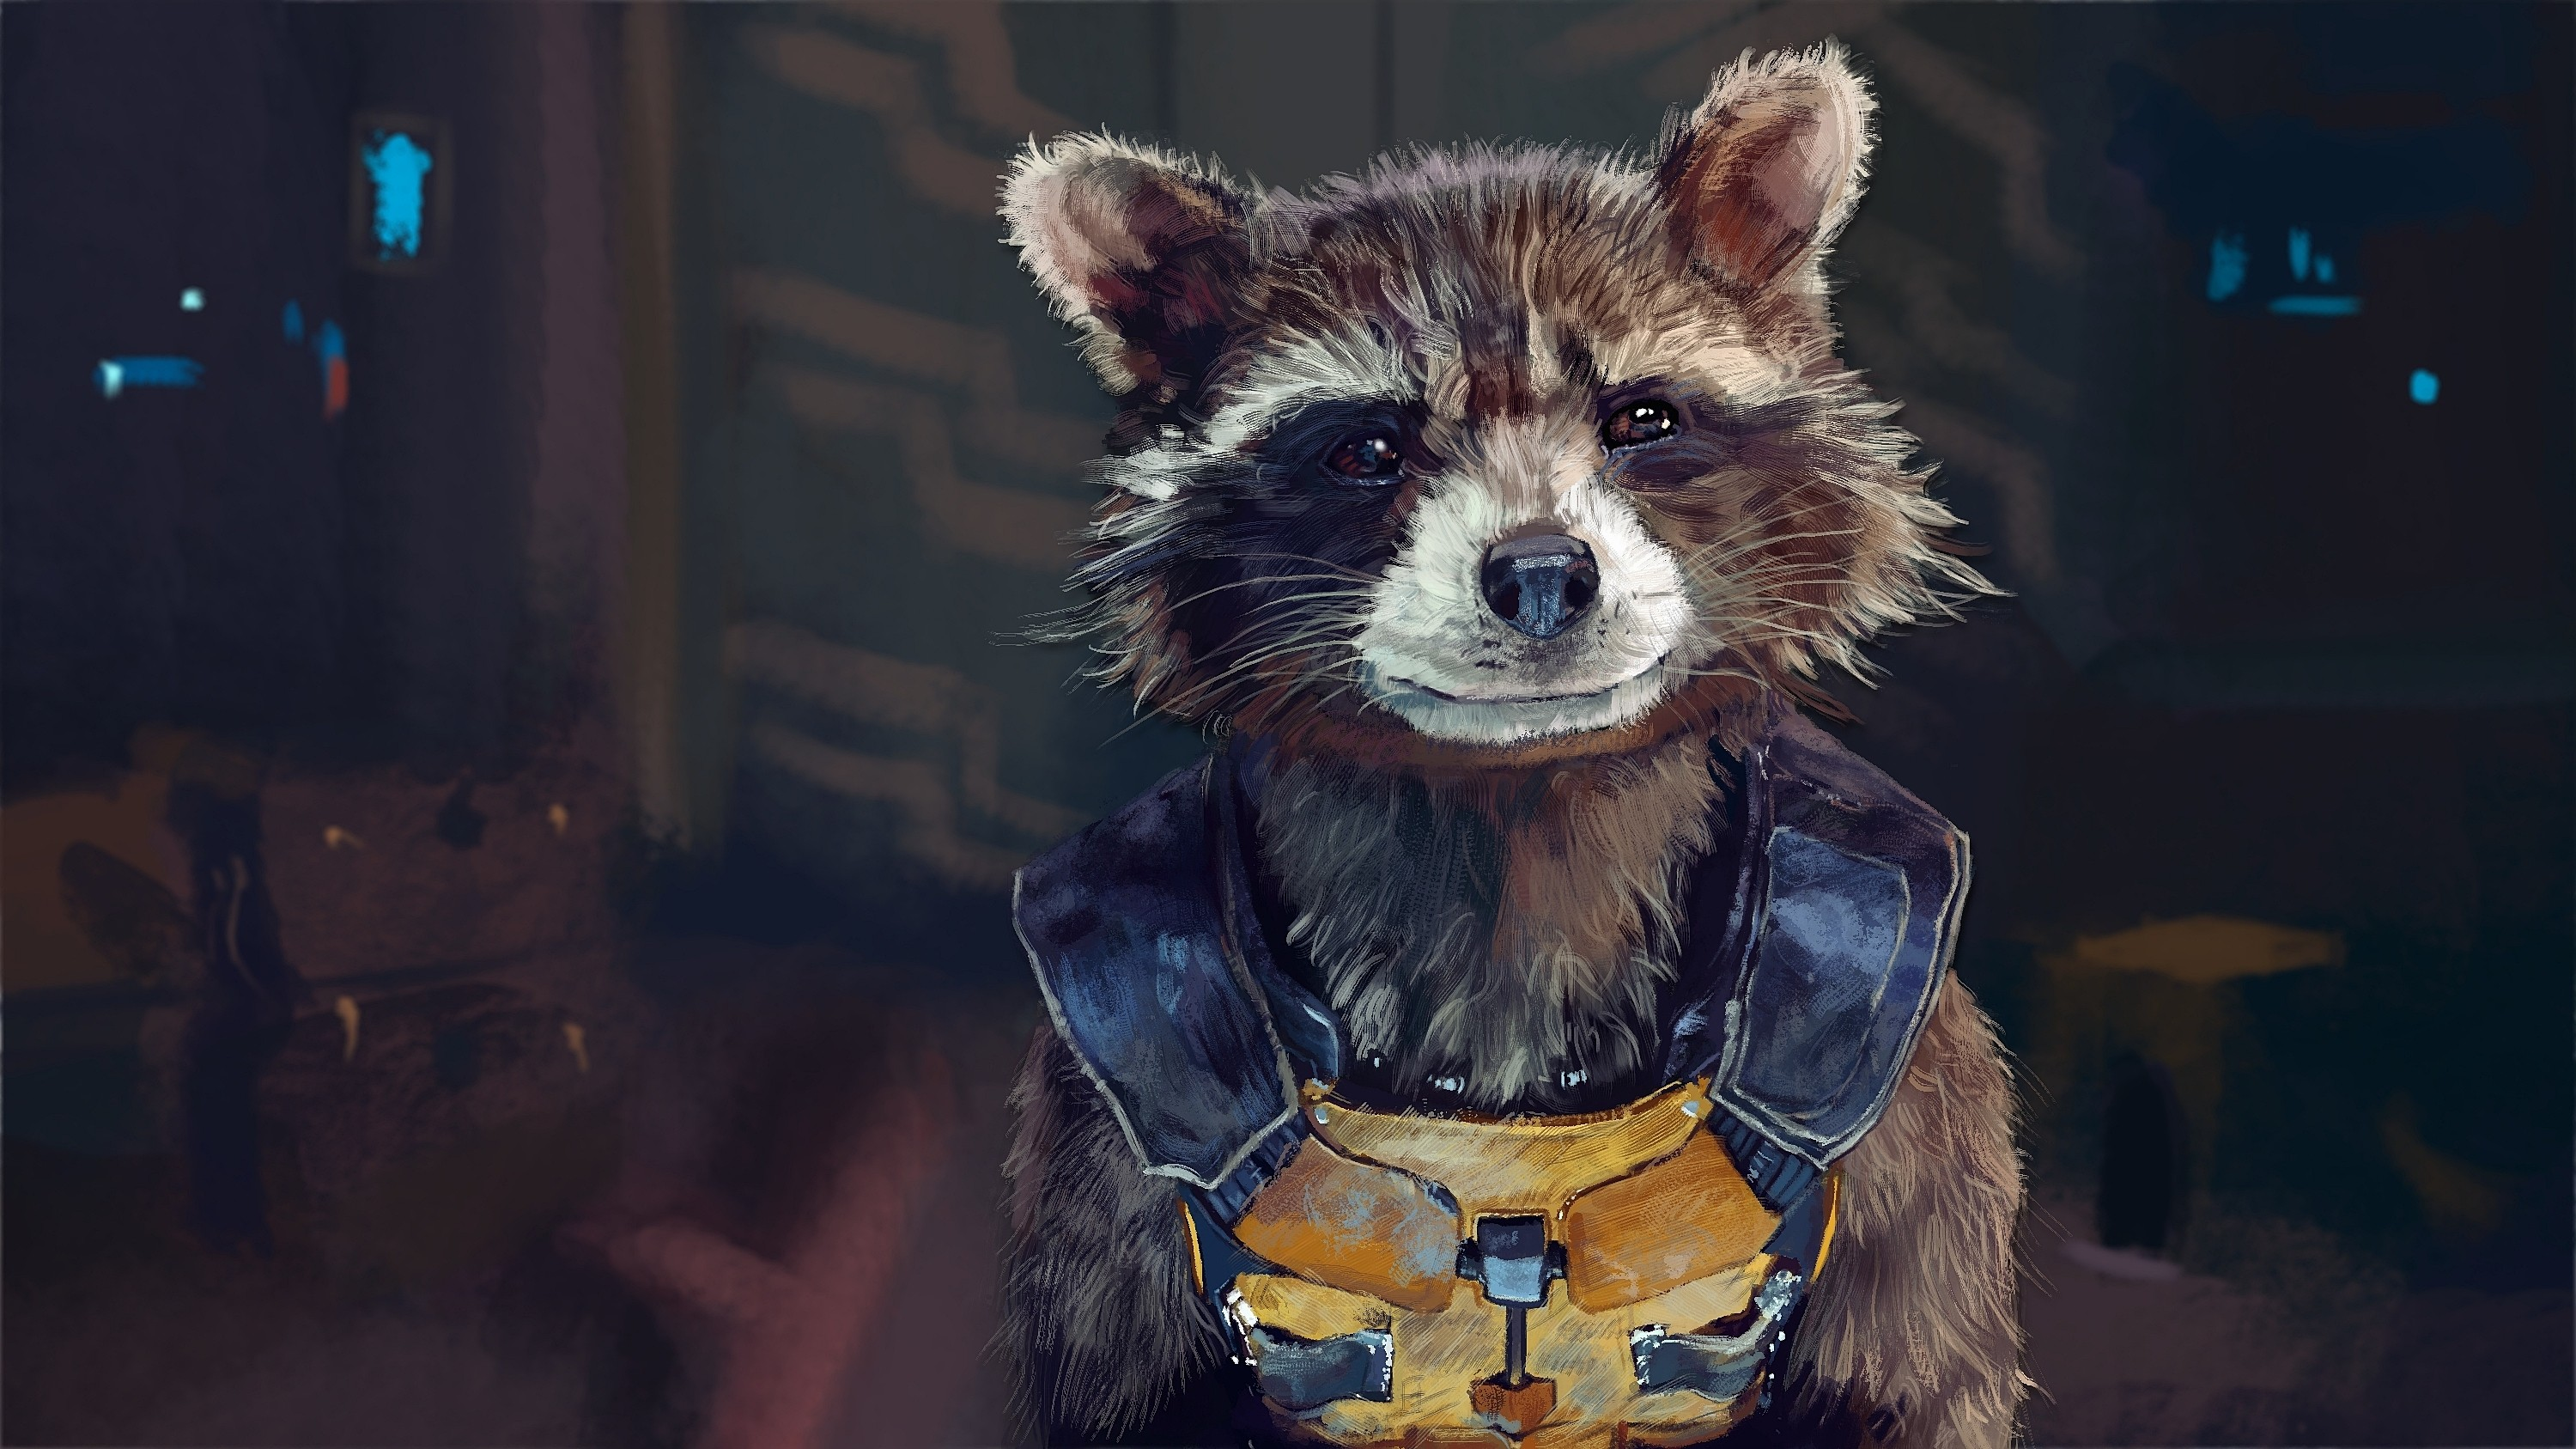 General 3000x1687 Guardians of the Galaxy Rocket Raccoon Marvel Comics